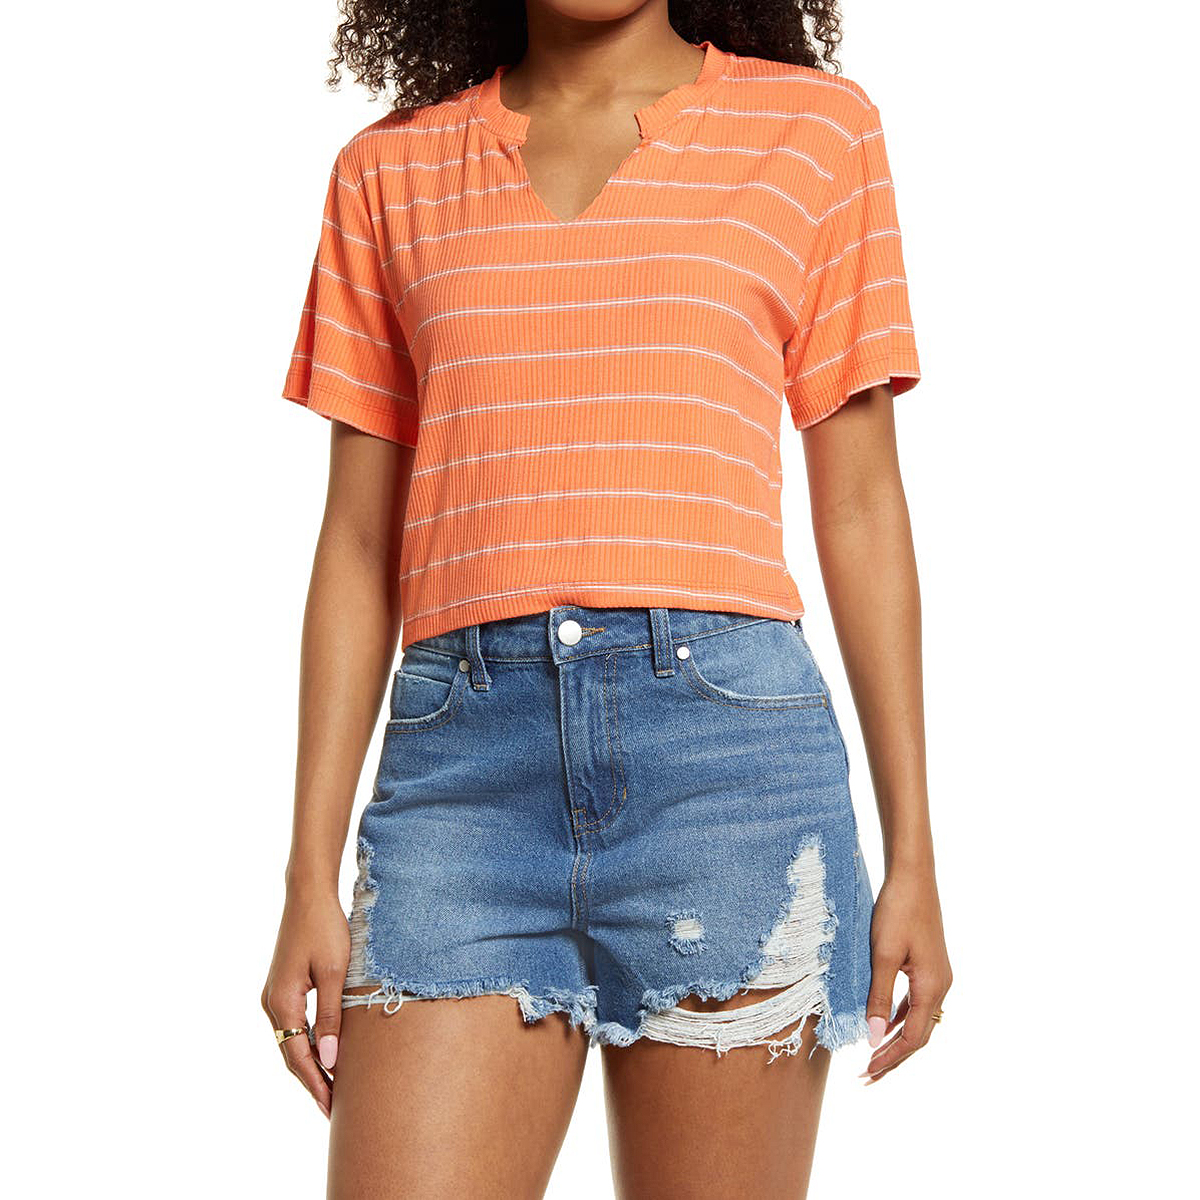 nordstrom-ribbed-clothing-boxy-tee